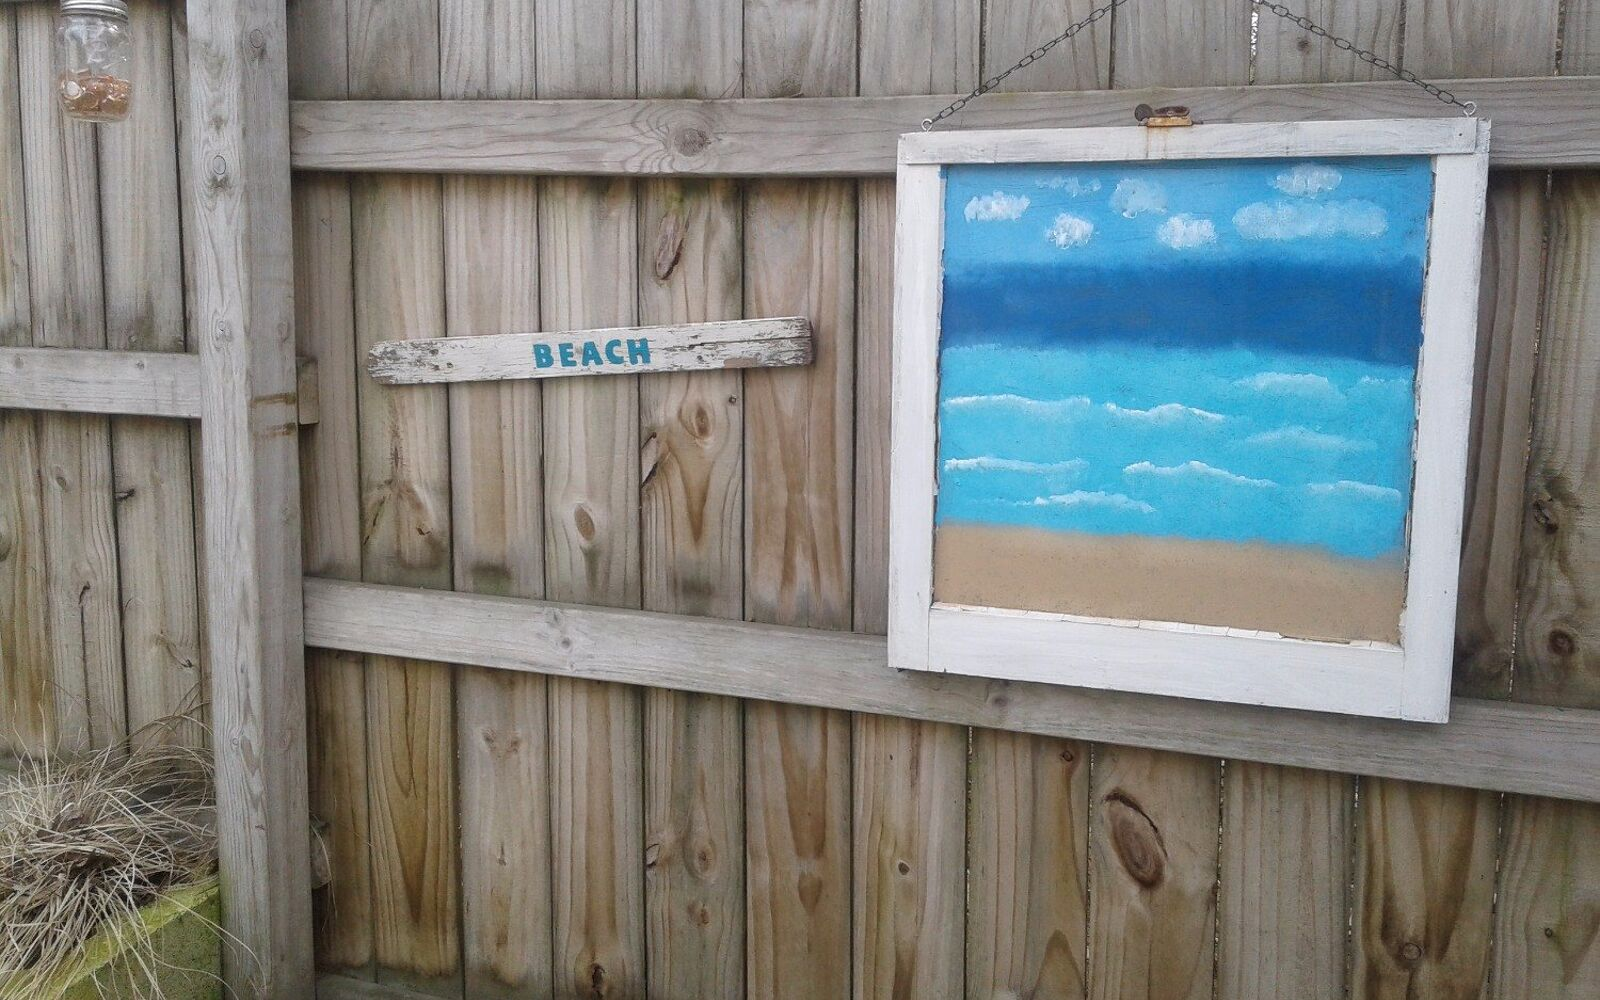 s upgrade your backyard with these 30 clever ideas, Ucpcyle old windows into art